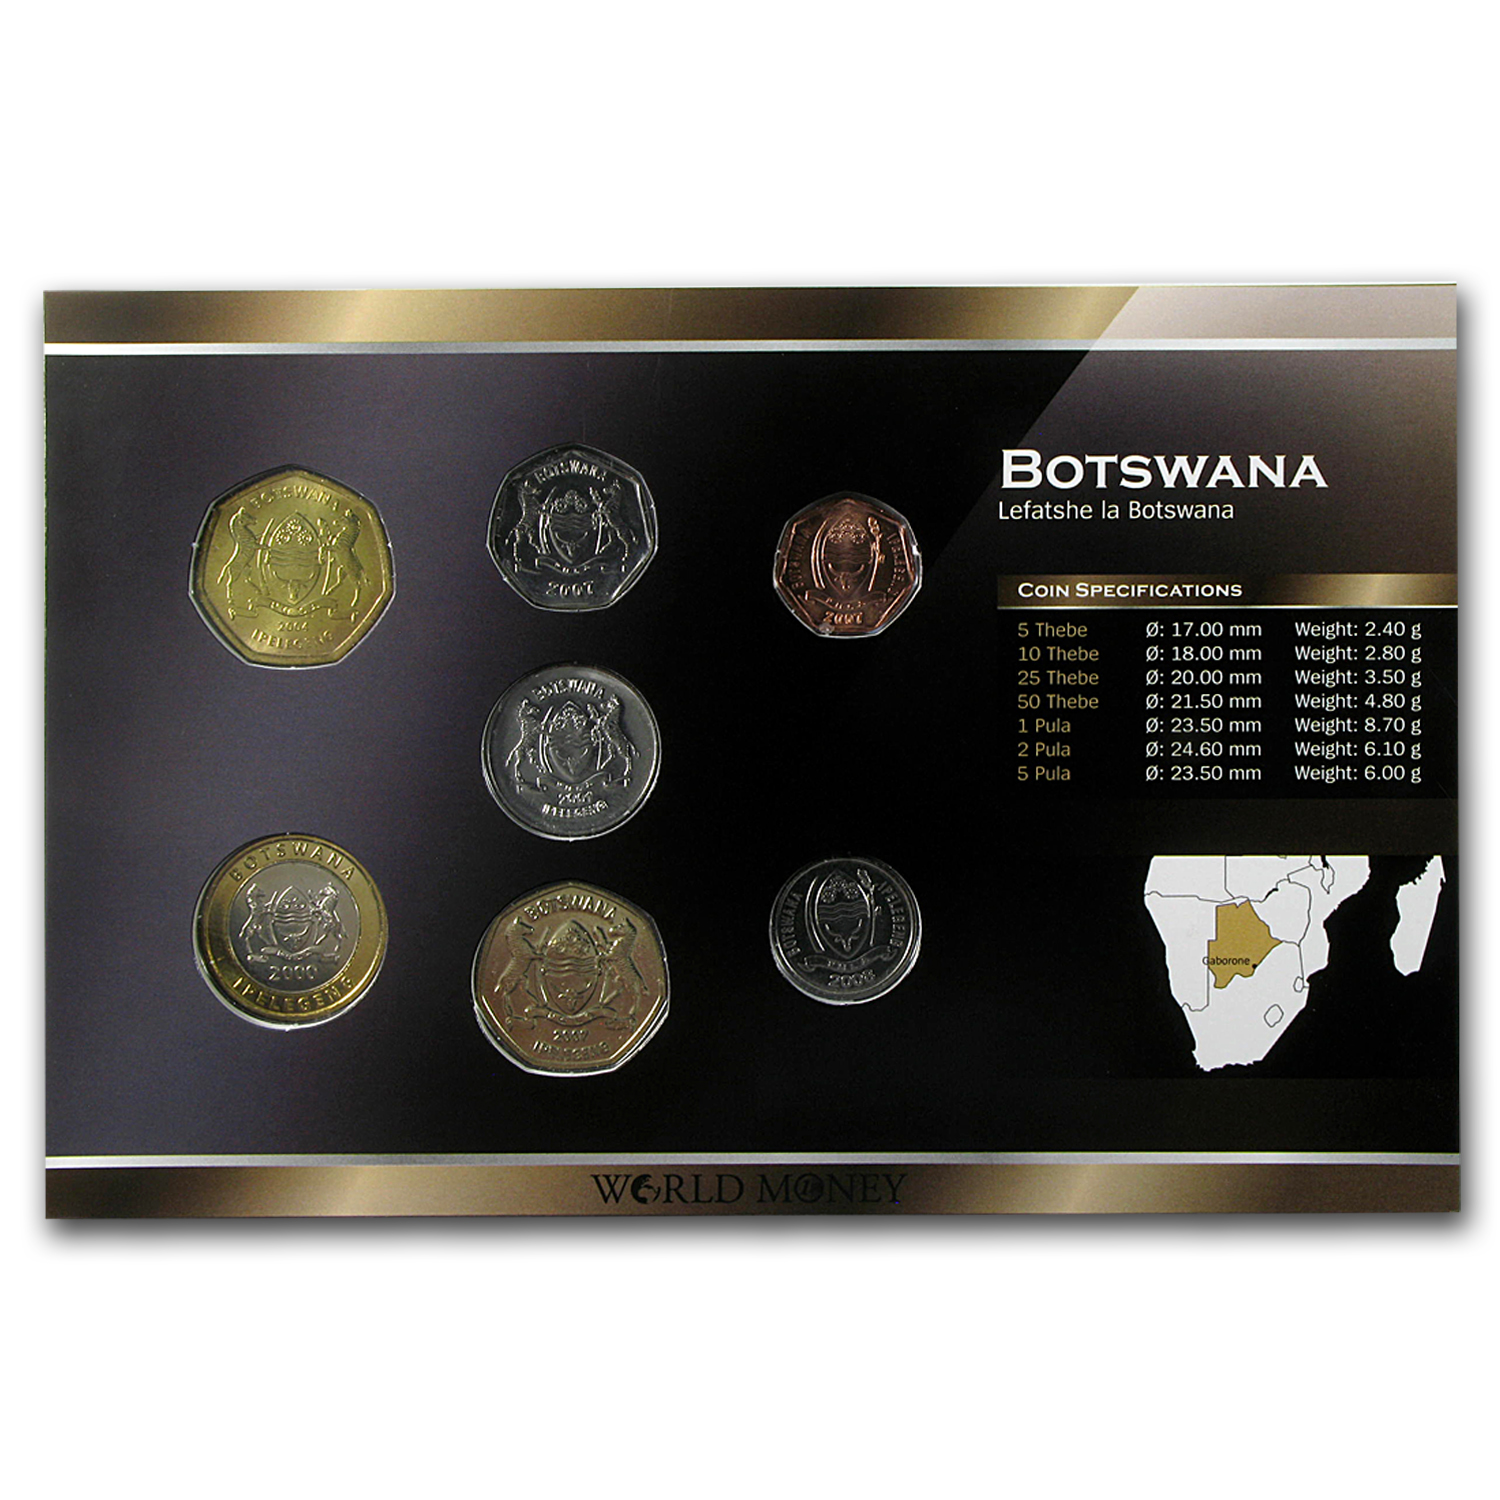 1999-2008 Botswana 5 Thebe-5 Pula Coin Set Unc